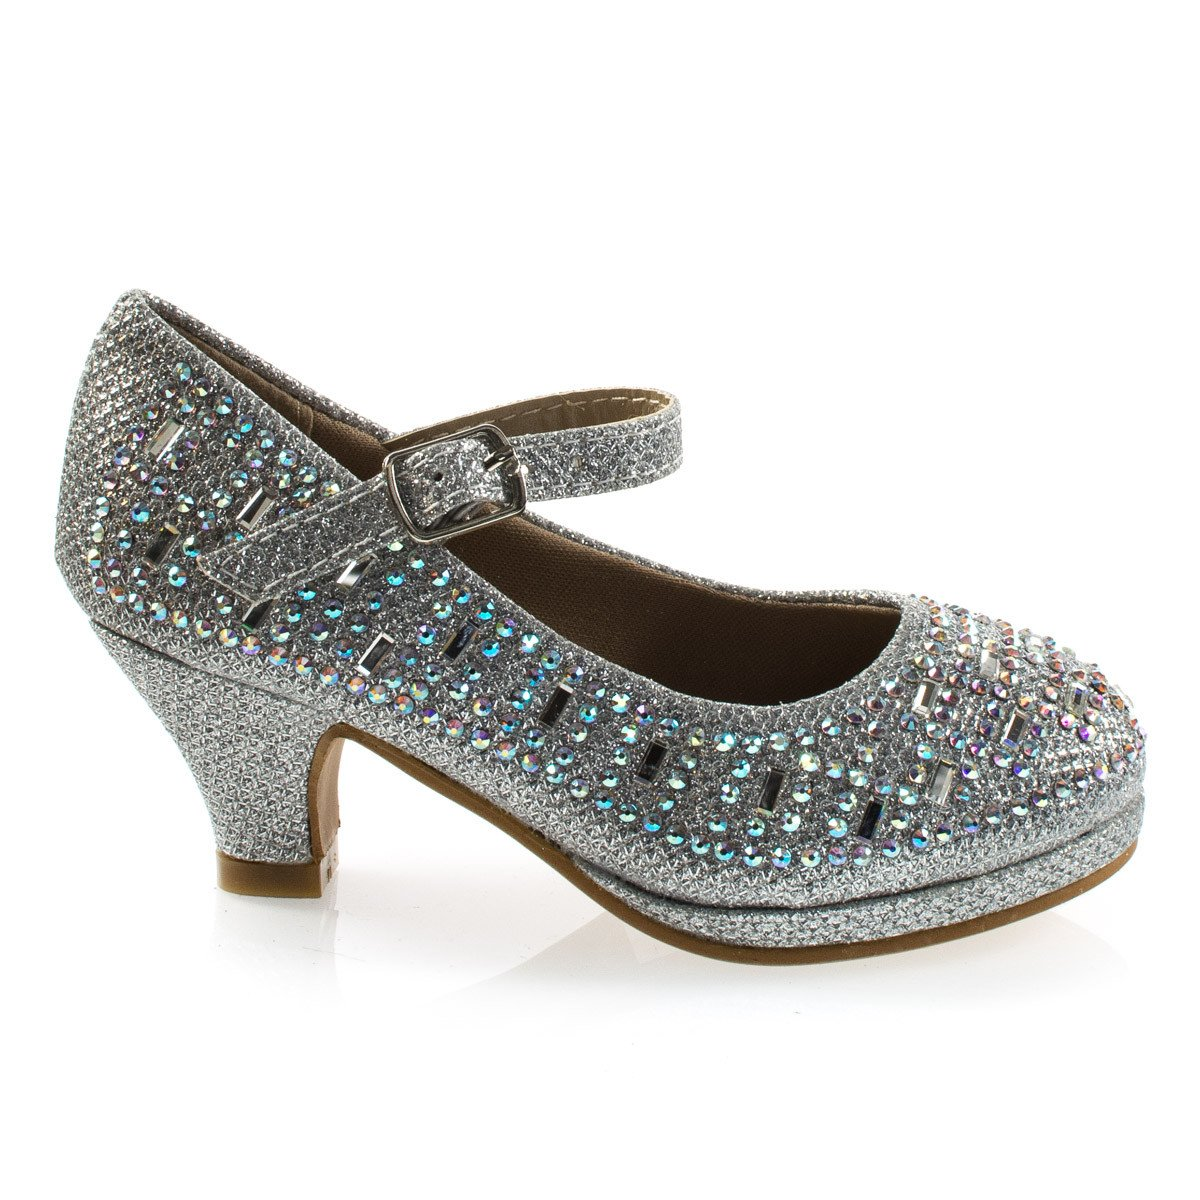 Riley78K by Forever Link, Girl's Rhinestone Encrusted Mary-Jane Dress Pump On Mesh Glitter